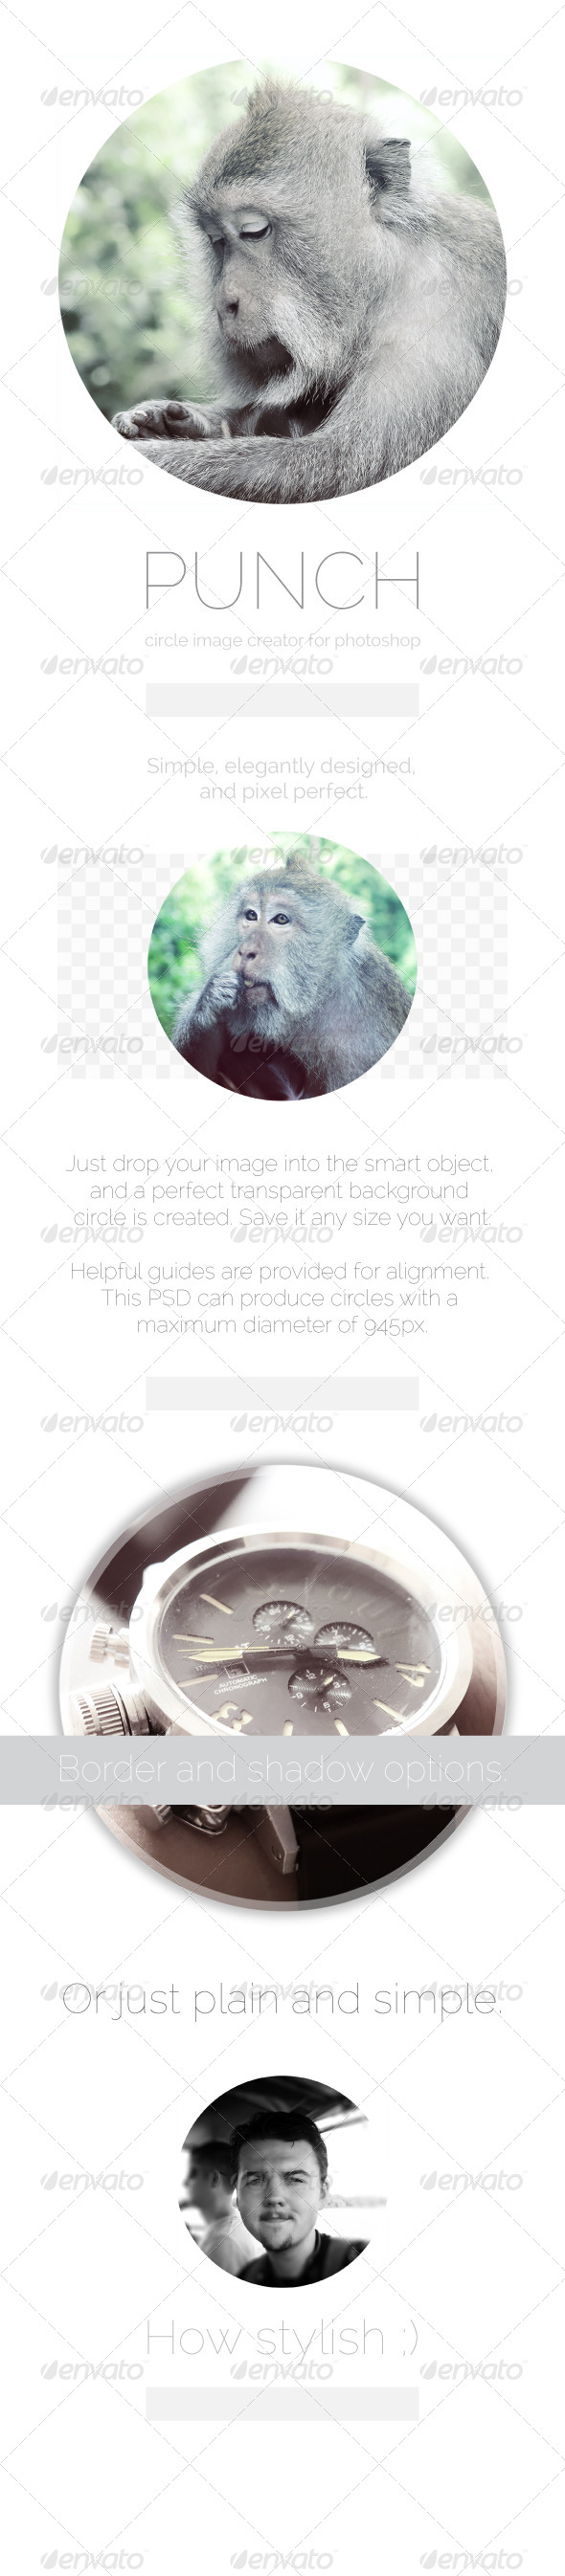 GraphicRiver Circle Image Creator 6834255